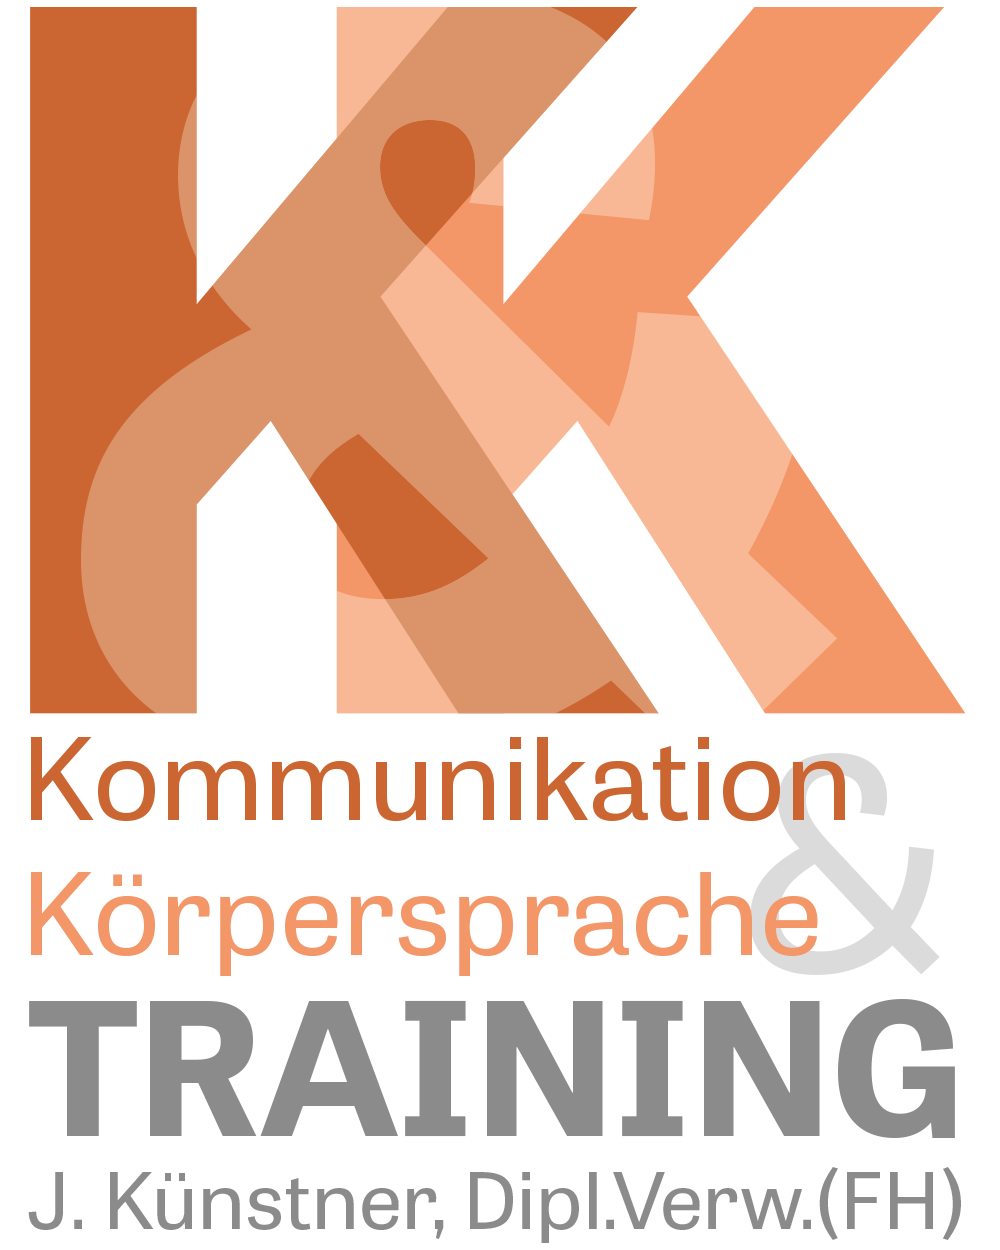 KK-Training